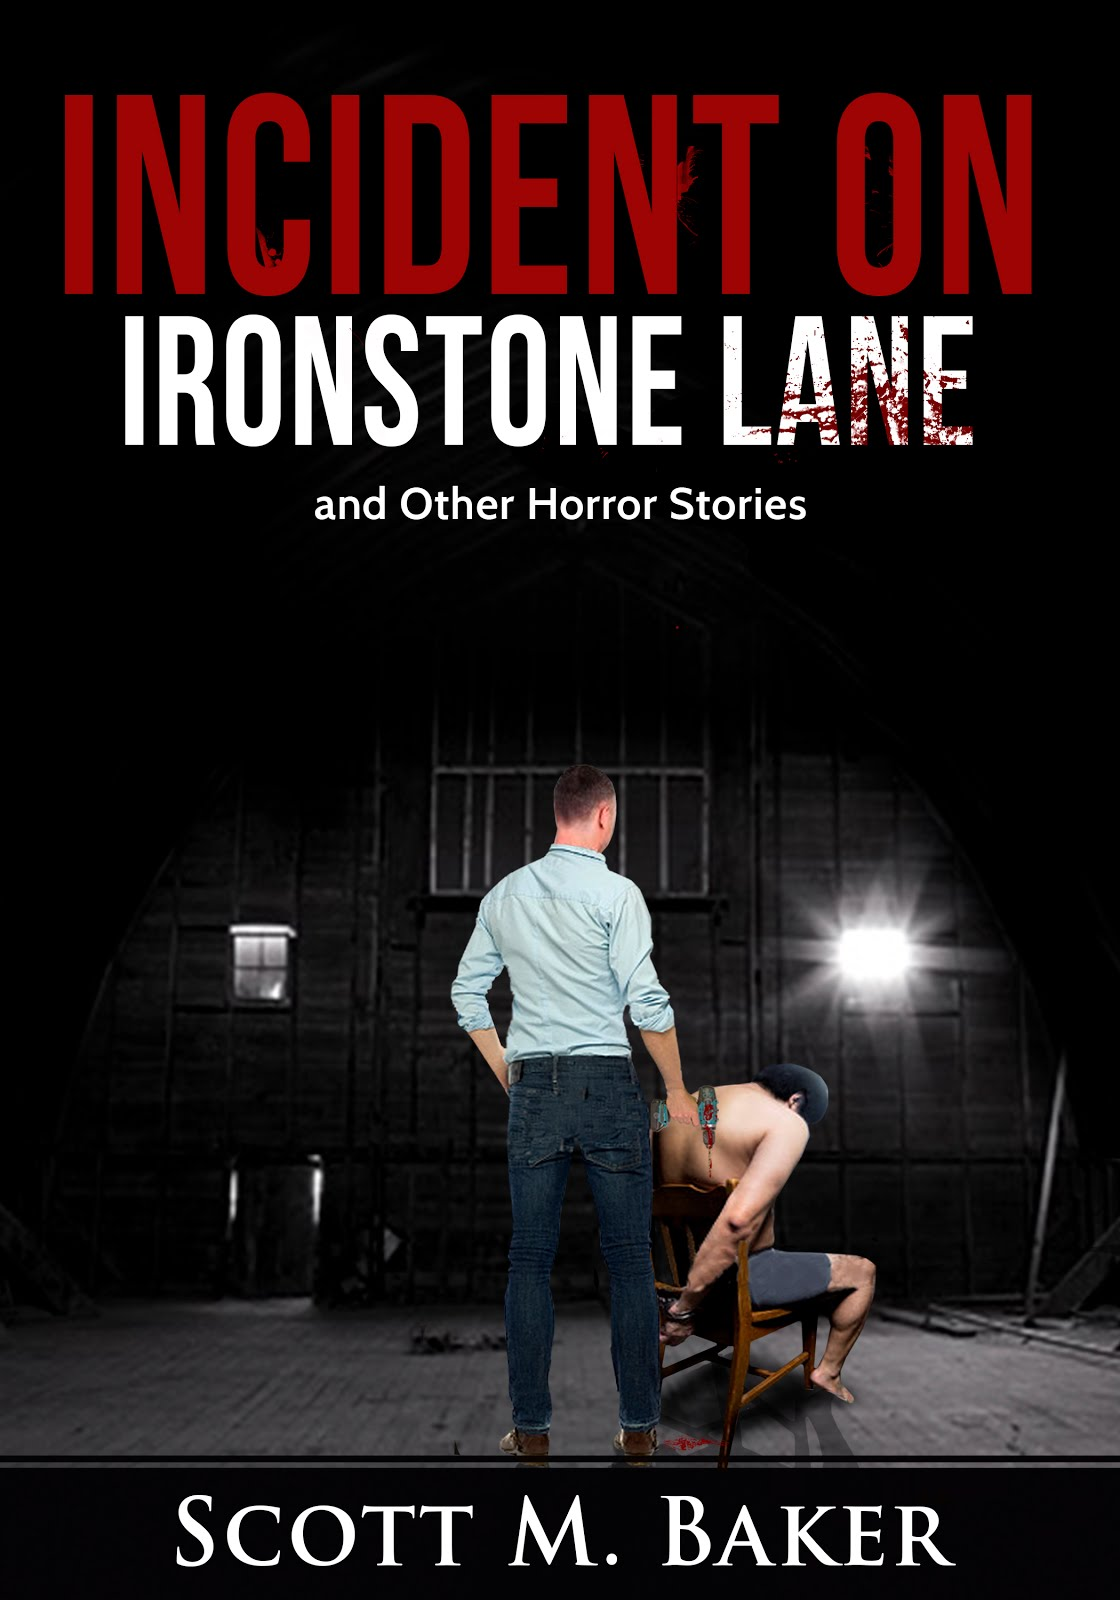 Incident on Ironstone Lane and Other Horror Stories